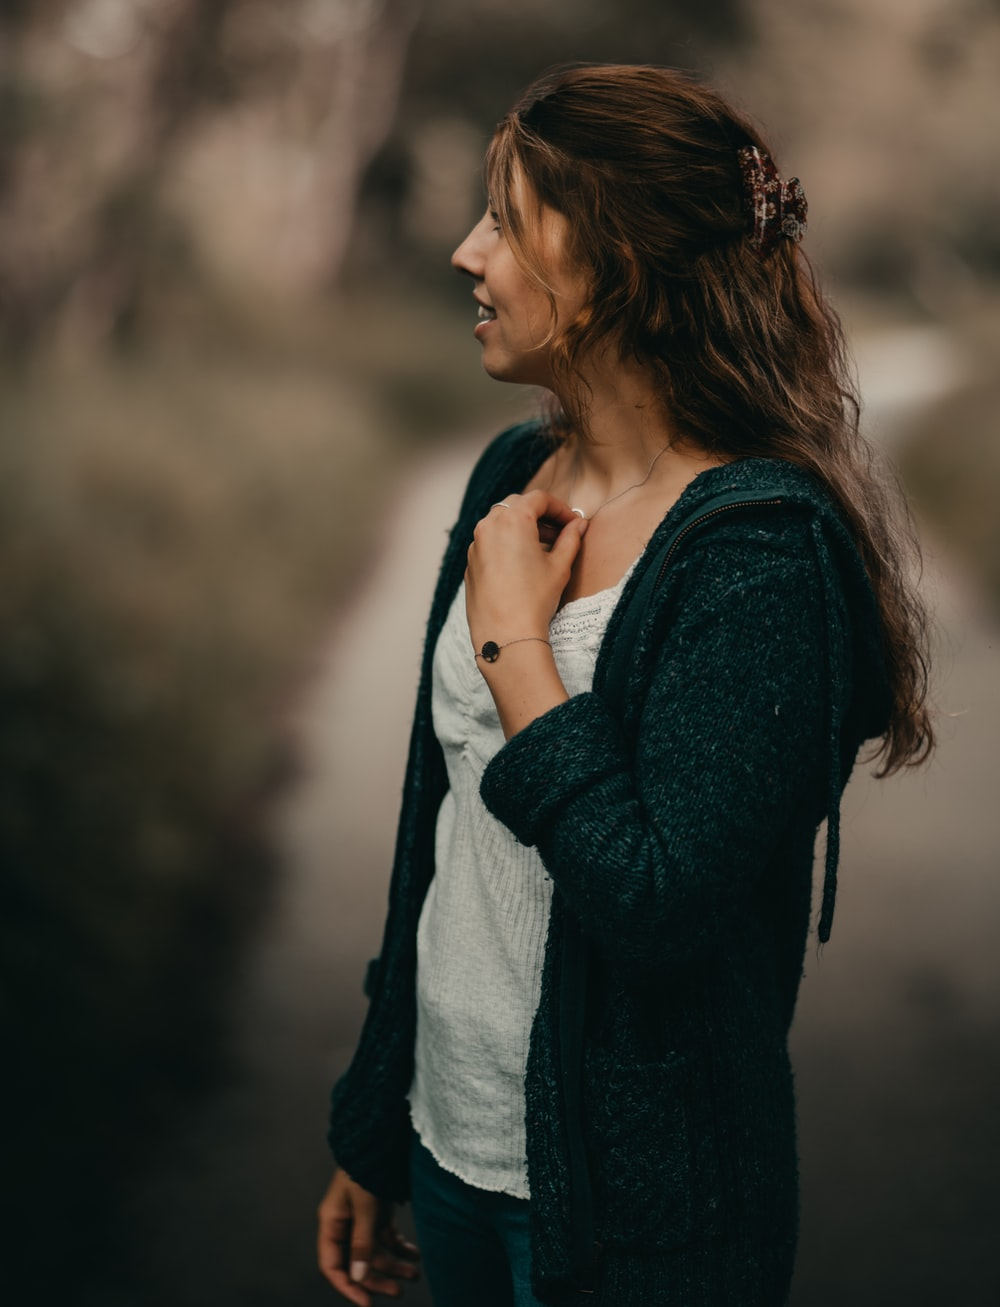 woman in black cardigan and white shirt